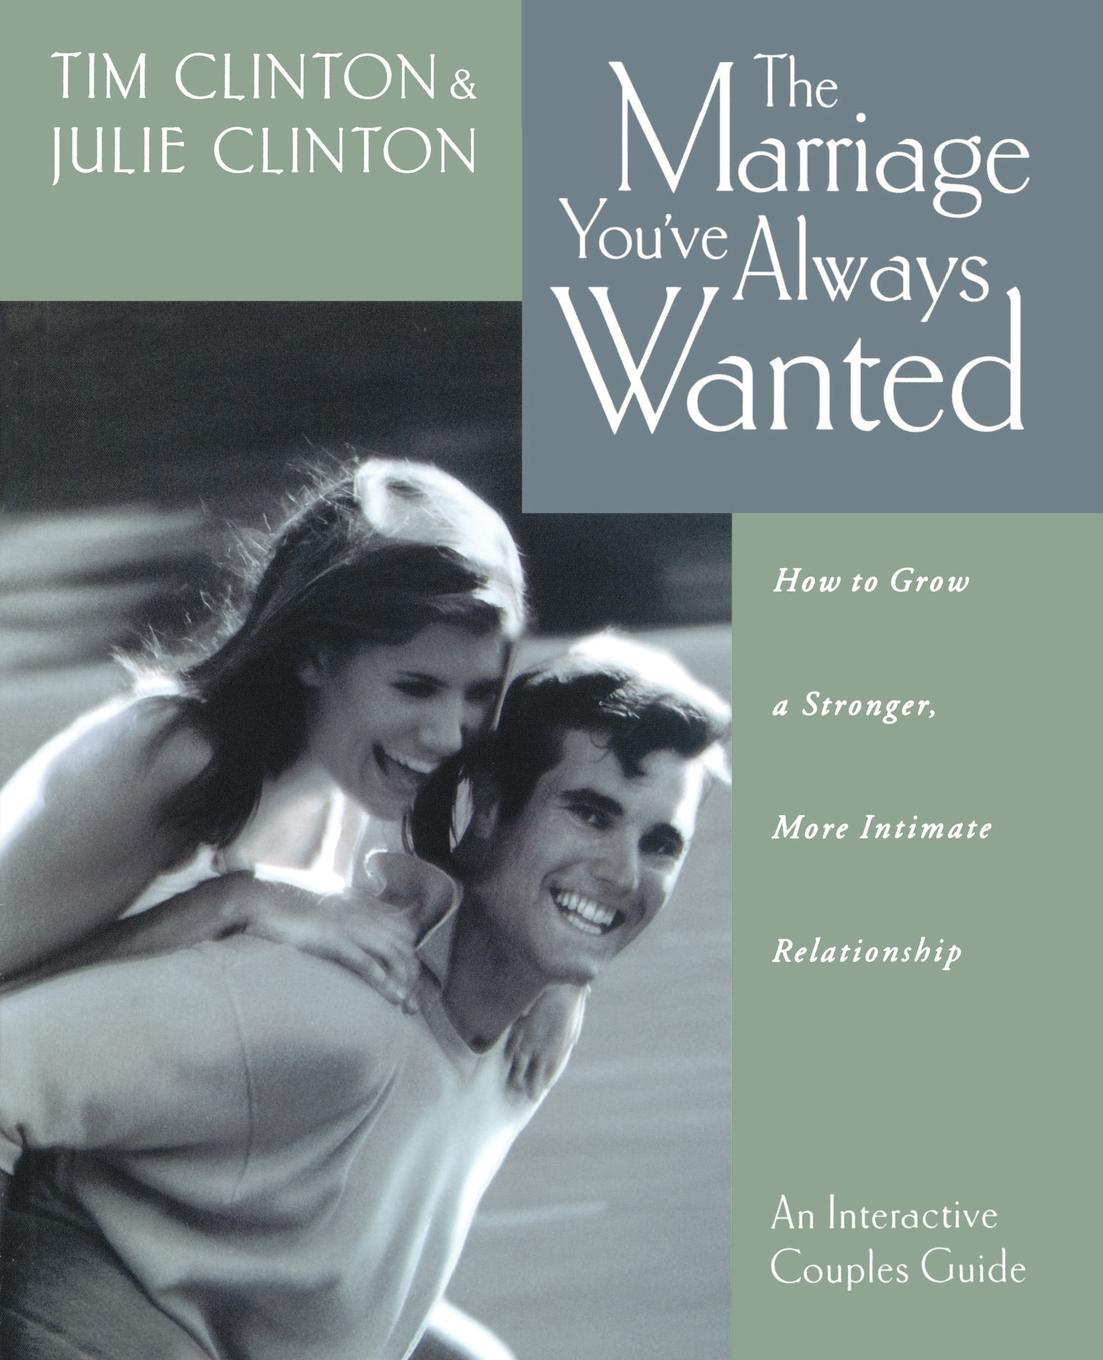 Timothy Clinton, Julie Clinton, Tim Clinton The Marriage You.ve Always Wanted. How to Grow a Stronger, More Intimate Relationship jordan d lewis trusted partners how companies build mutual trust and win together